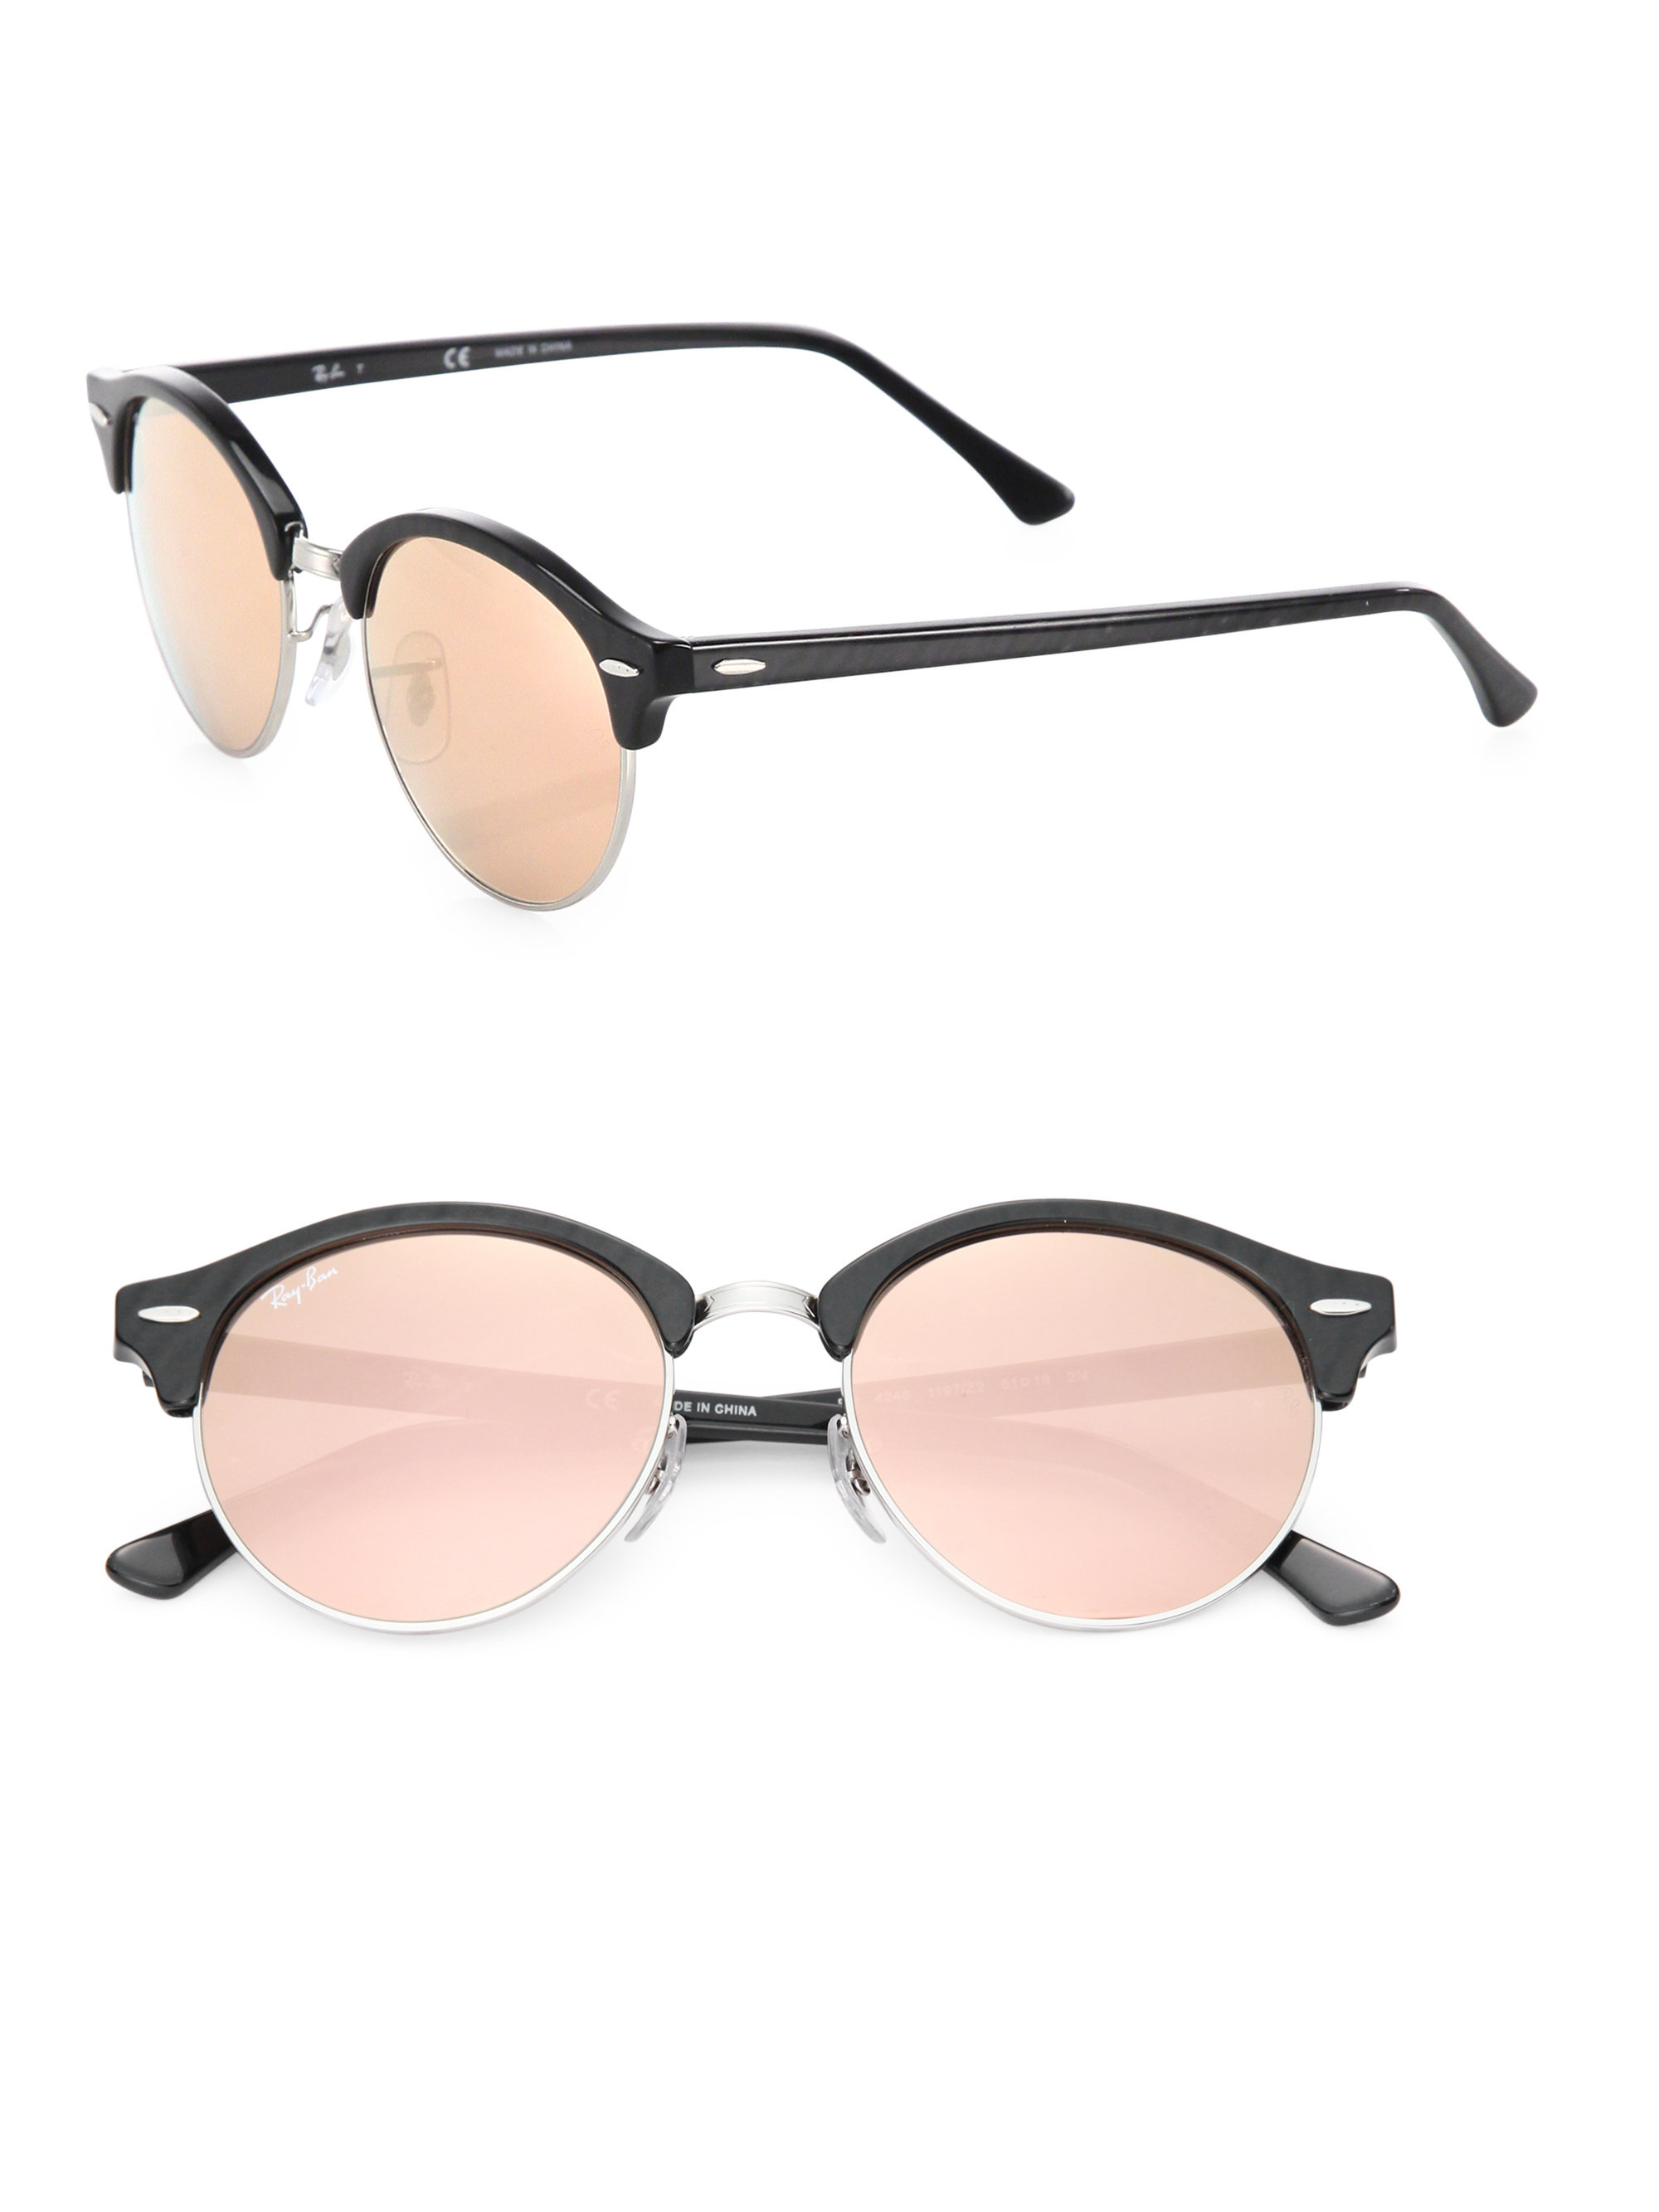 def8773074bb Ray-ban Round Metal Flat Lens Mirrored Sunglasses